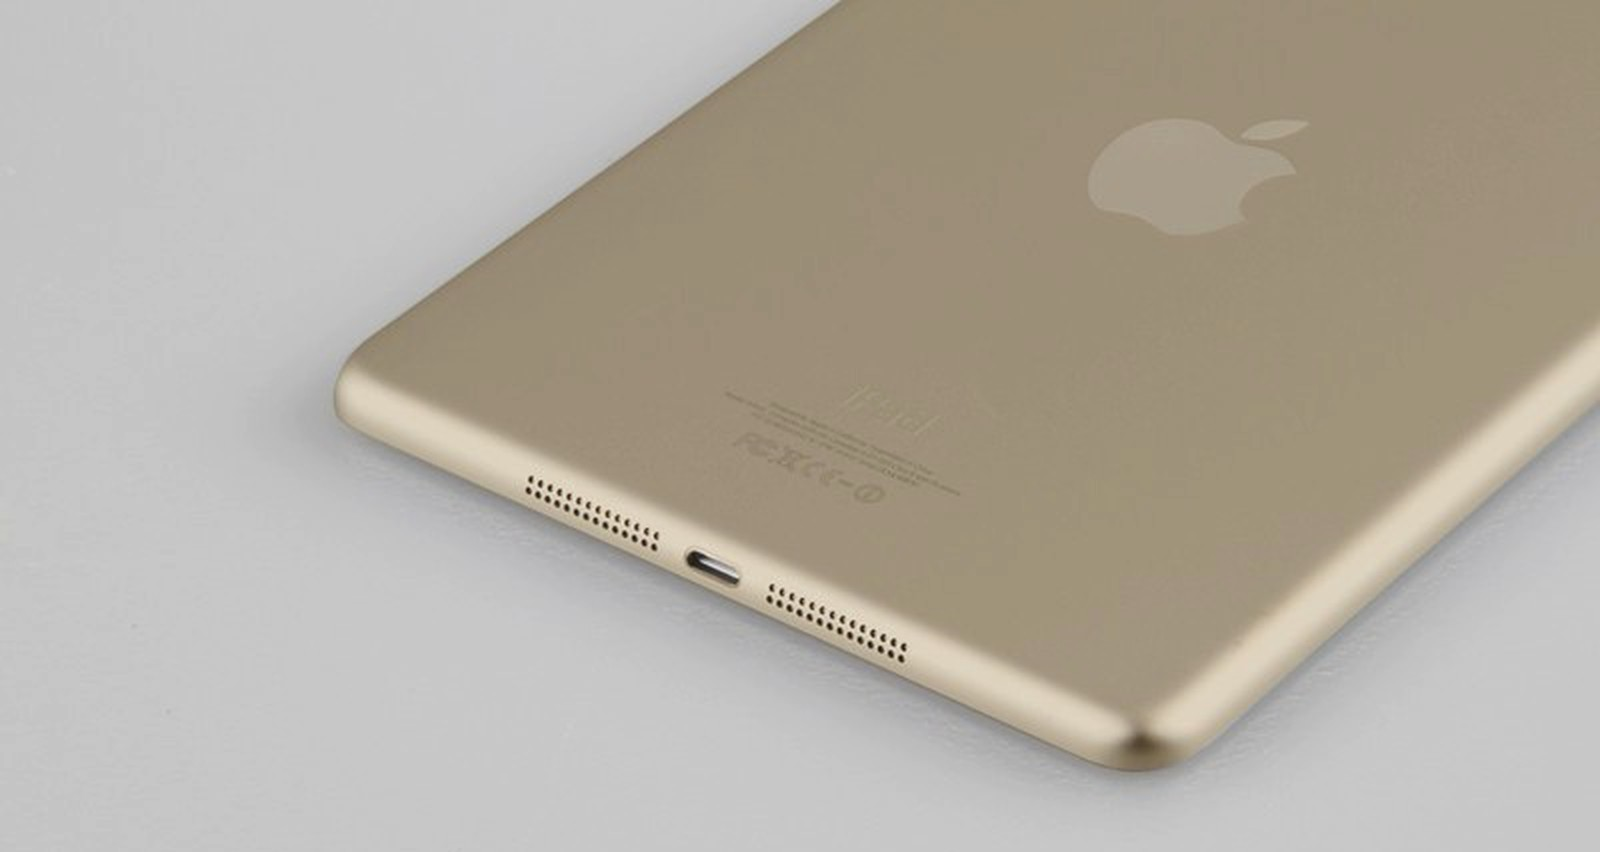 Photos of Claimed Gold iPad Mini with Touch ID Fingerprint ...